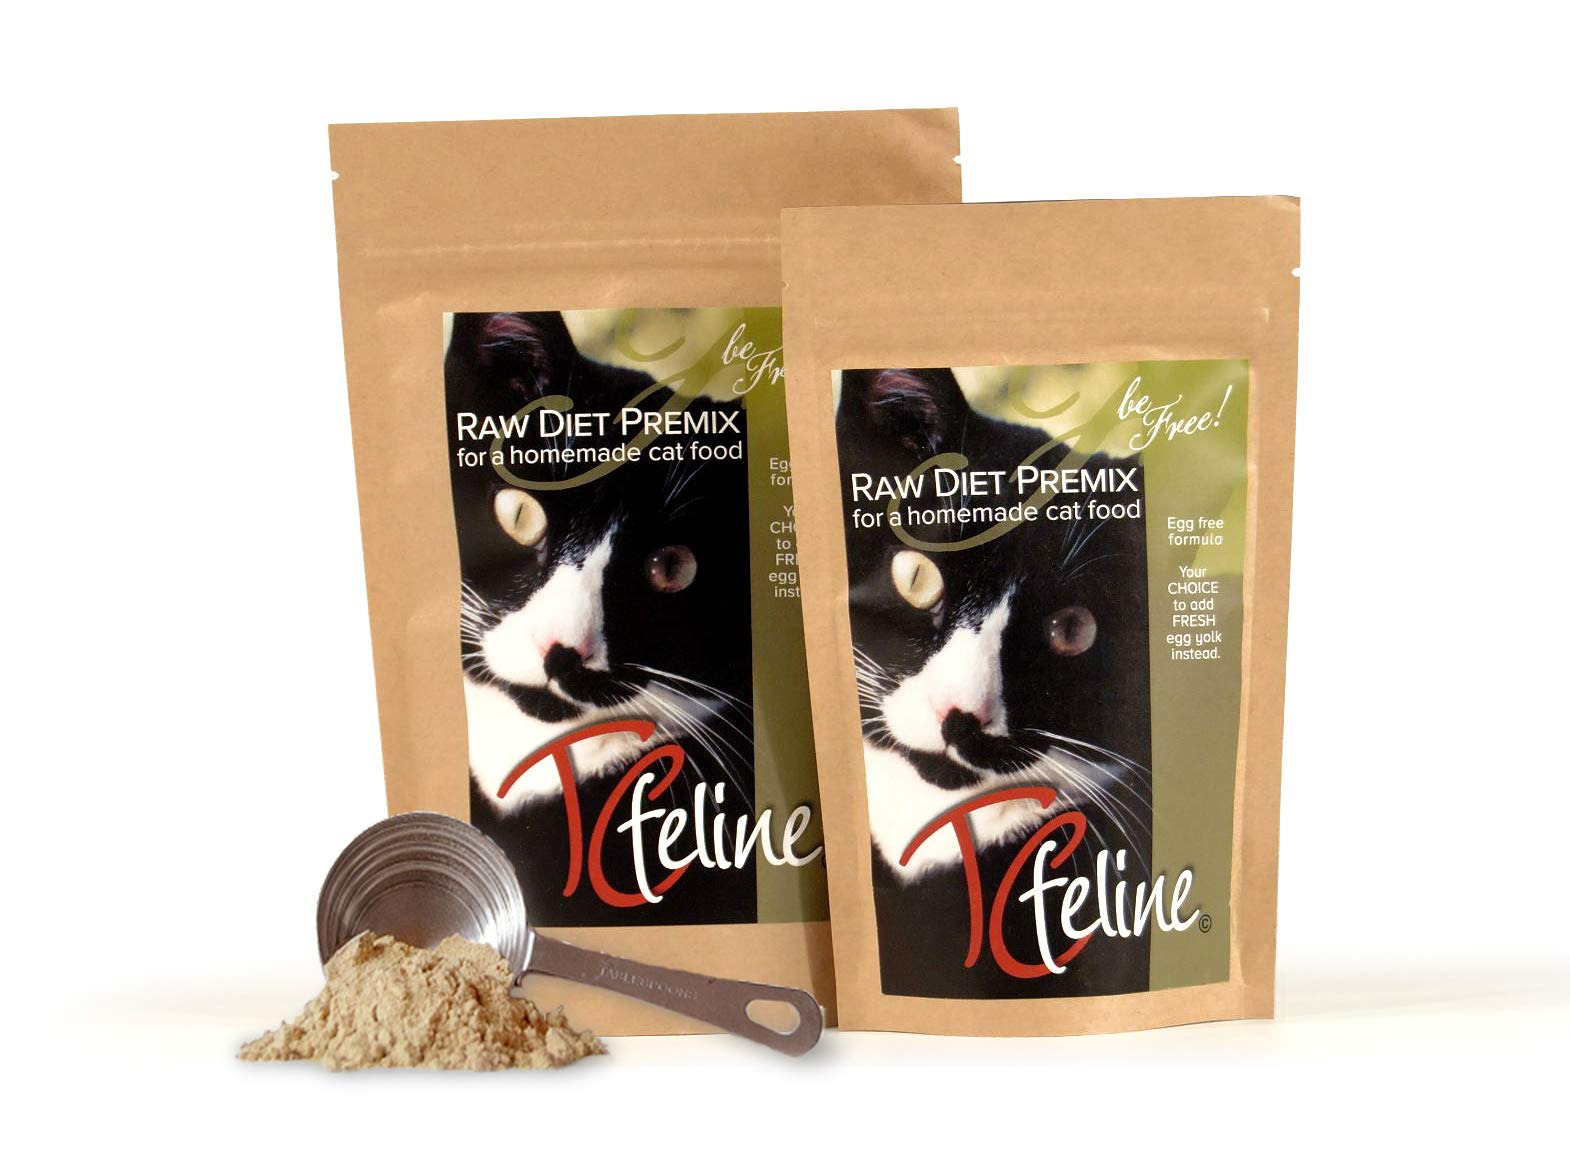 TCfeline RAW Cat Food Premix/Supplement to Make a Homemade, All Natural, Grain Free, Holistic Diet - Original Version with No Liver (Regular 17 oz) Egg Free Formula by The Total Cat Store